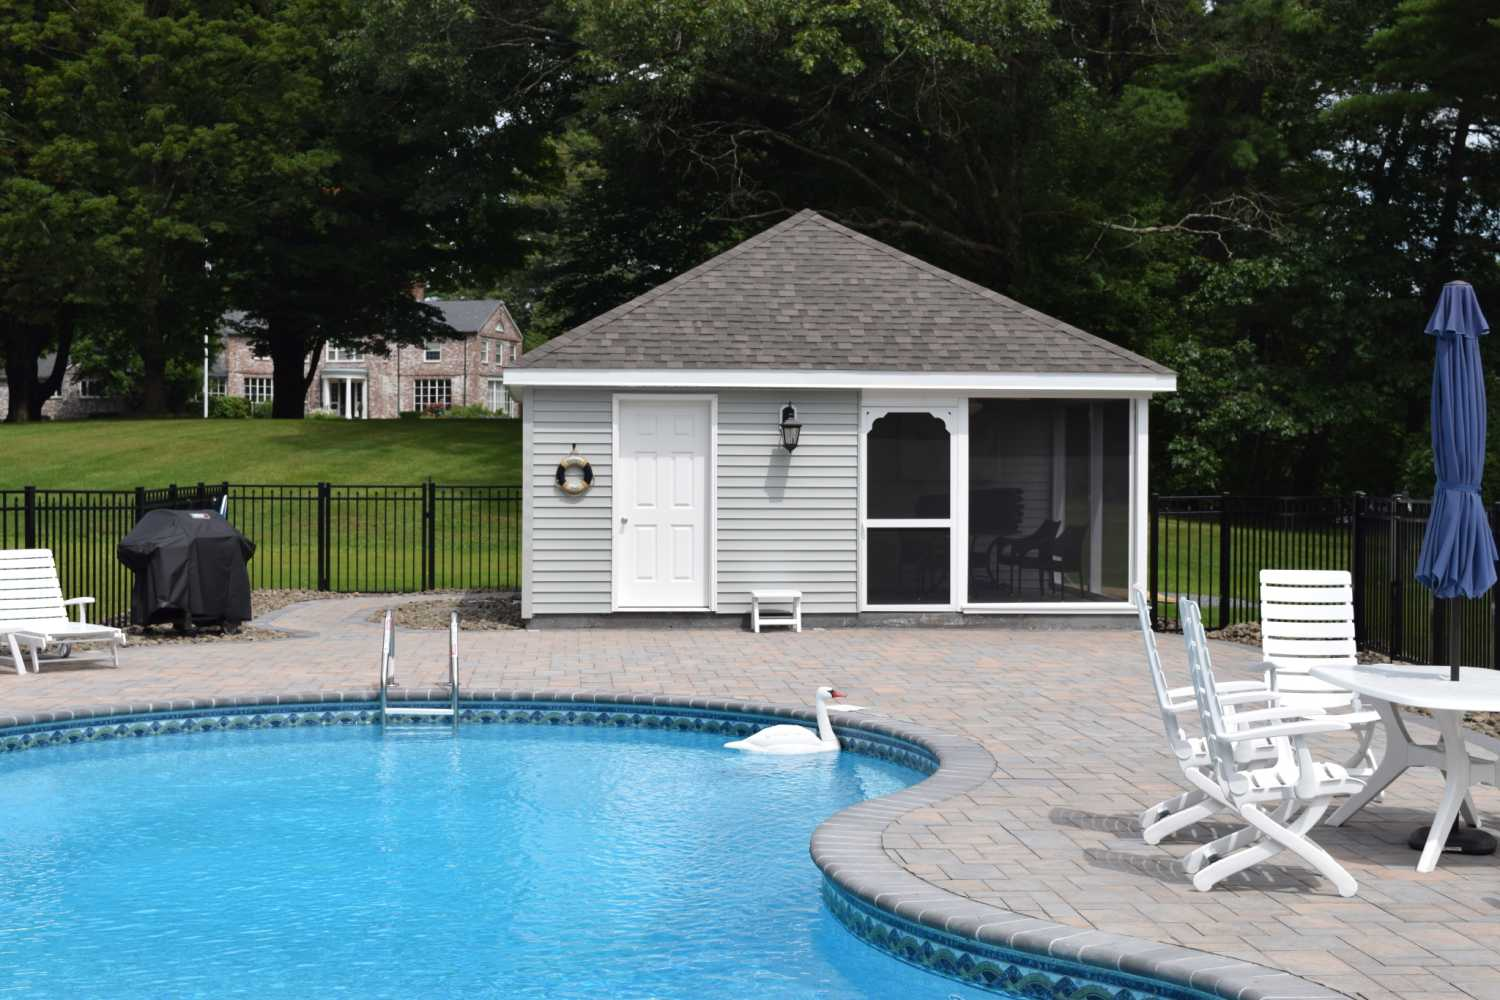 Poolhouse With Storage Area And A Full Screened In Sitting Plumbing Electric